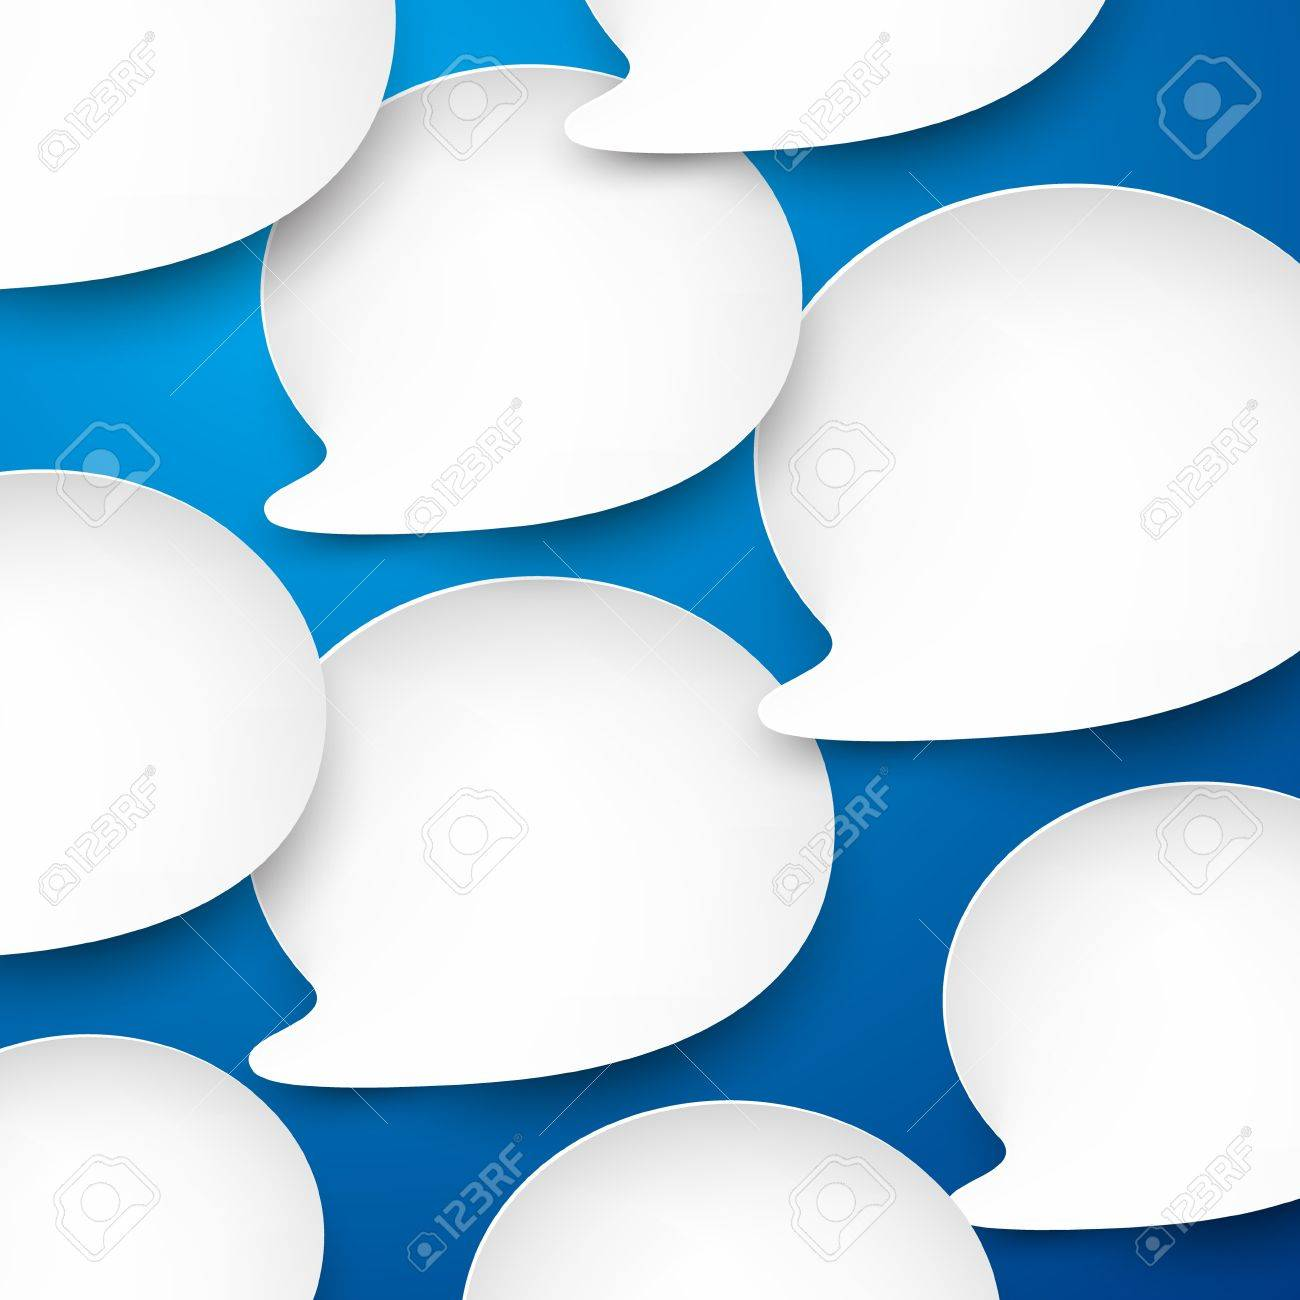 Vector abstract illustration of white paper speech bubbles on blue background Stock Vector - 17602336